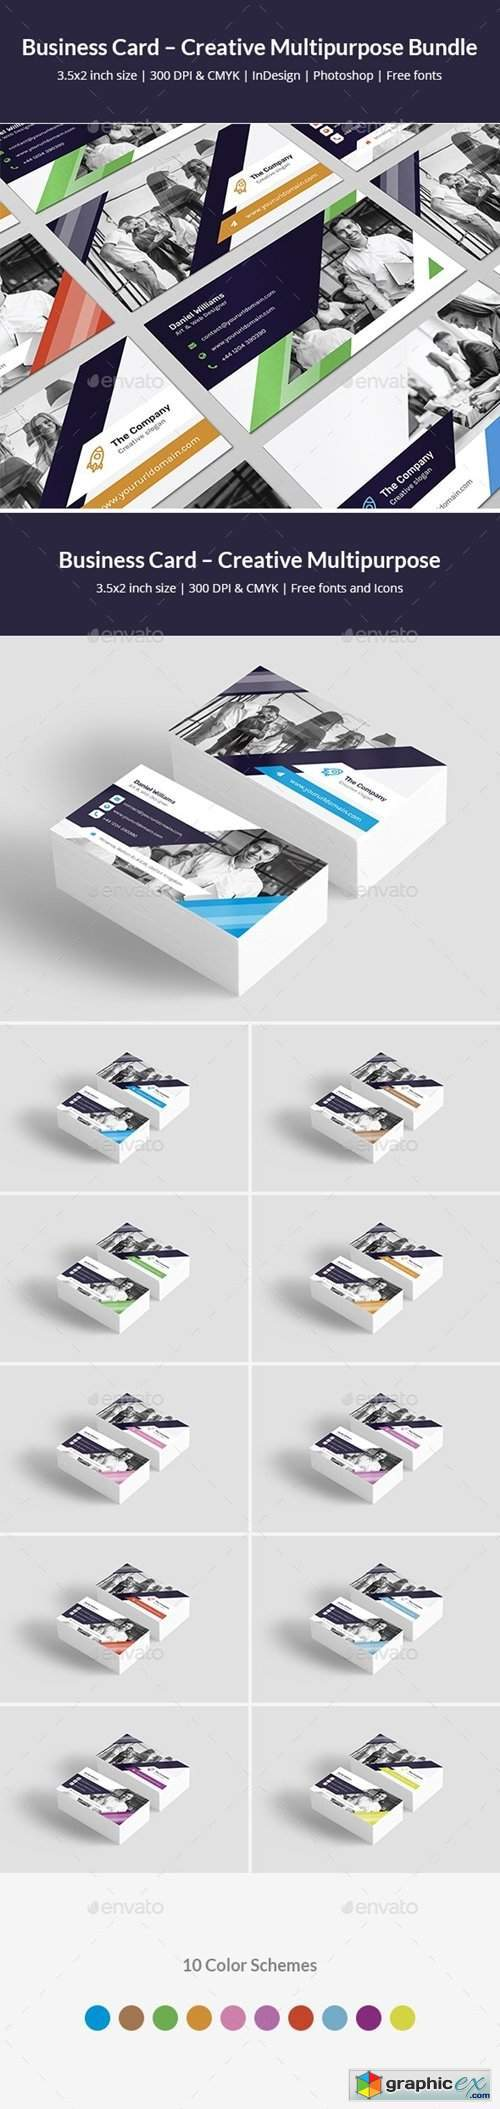 Business Card – Creative Multipurpose Bundle Print Templates 2 in 1